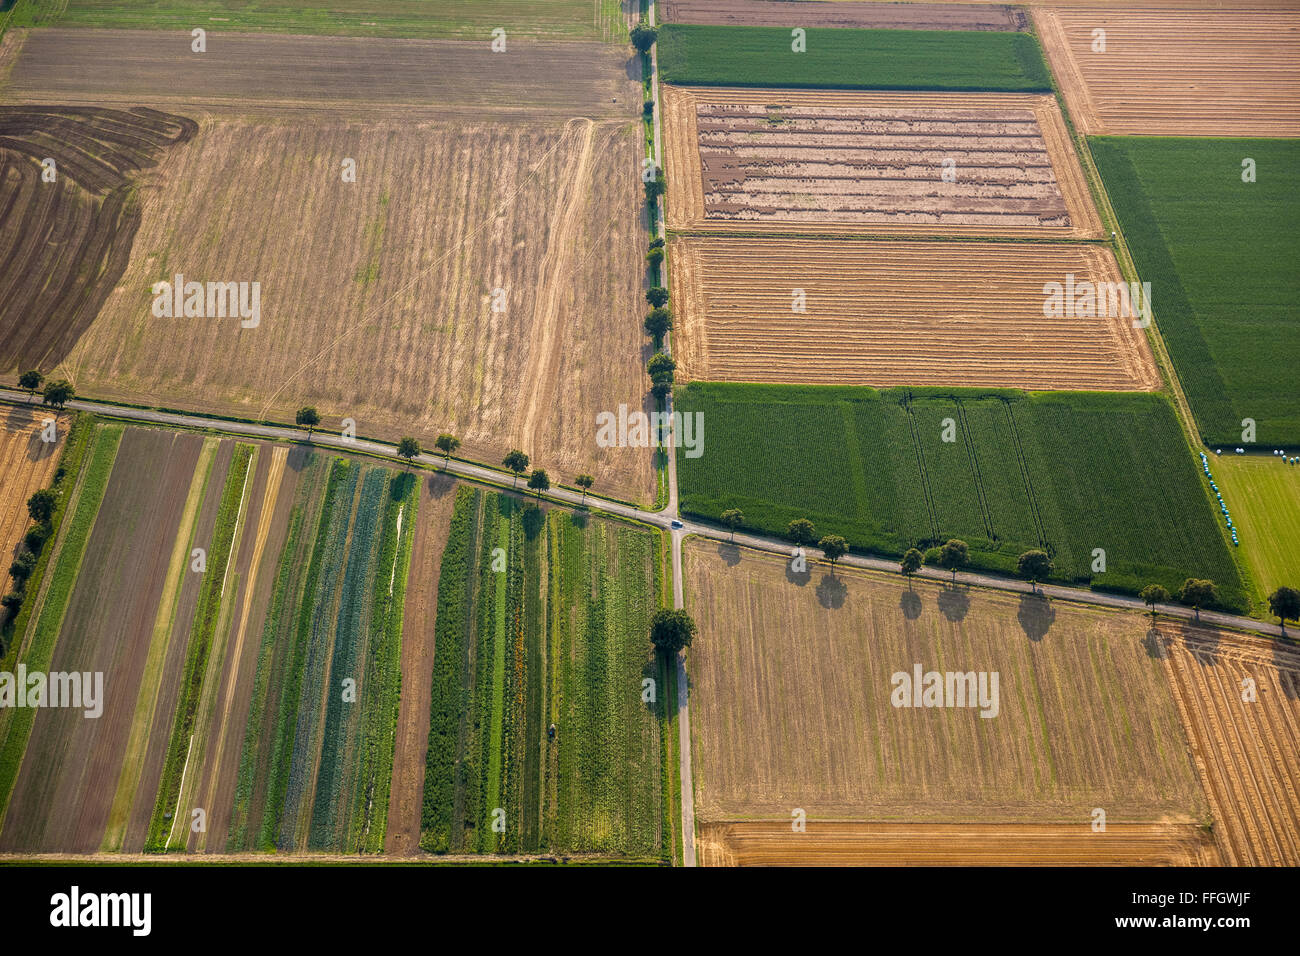 Aerial view, cruising the country roads, fields, alleys, Backlit, inheritance, crop rotation, Welver, Soester Plain, - Stock Image